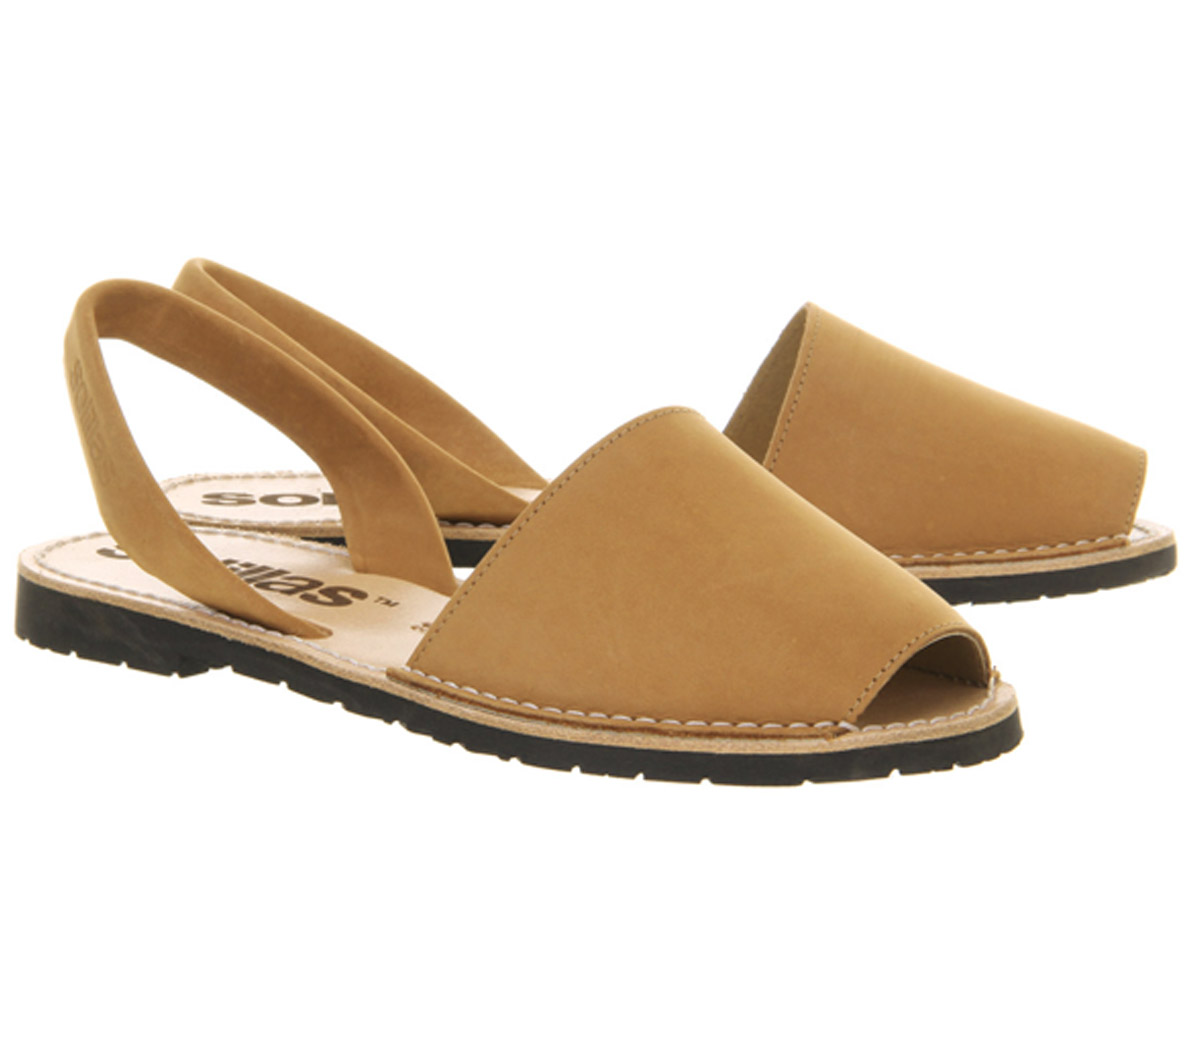 Womens-Solillas-Solillas-Sandals-Tan-Leather-Sandals thumbnail 13